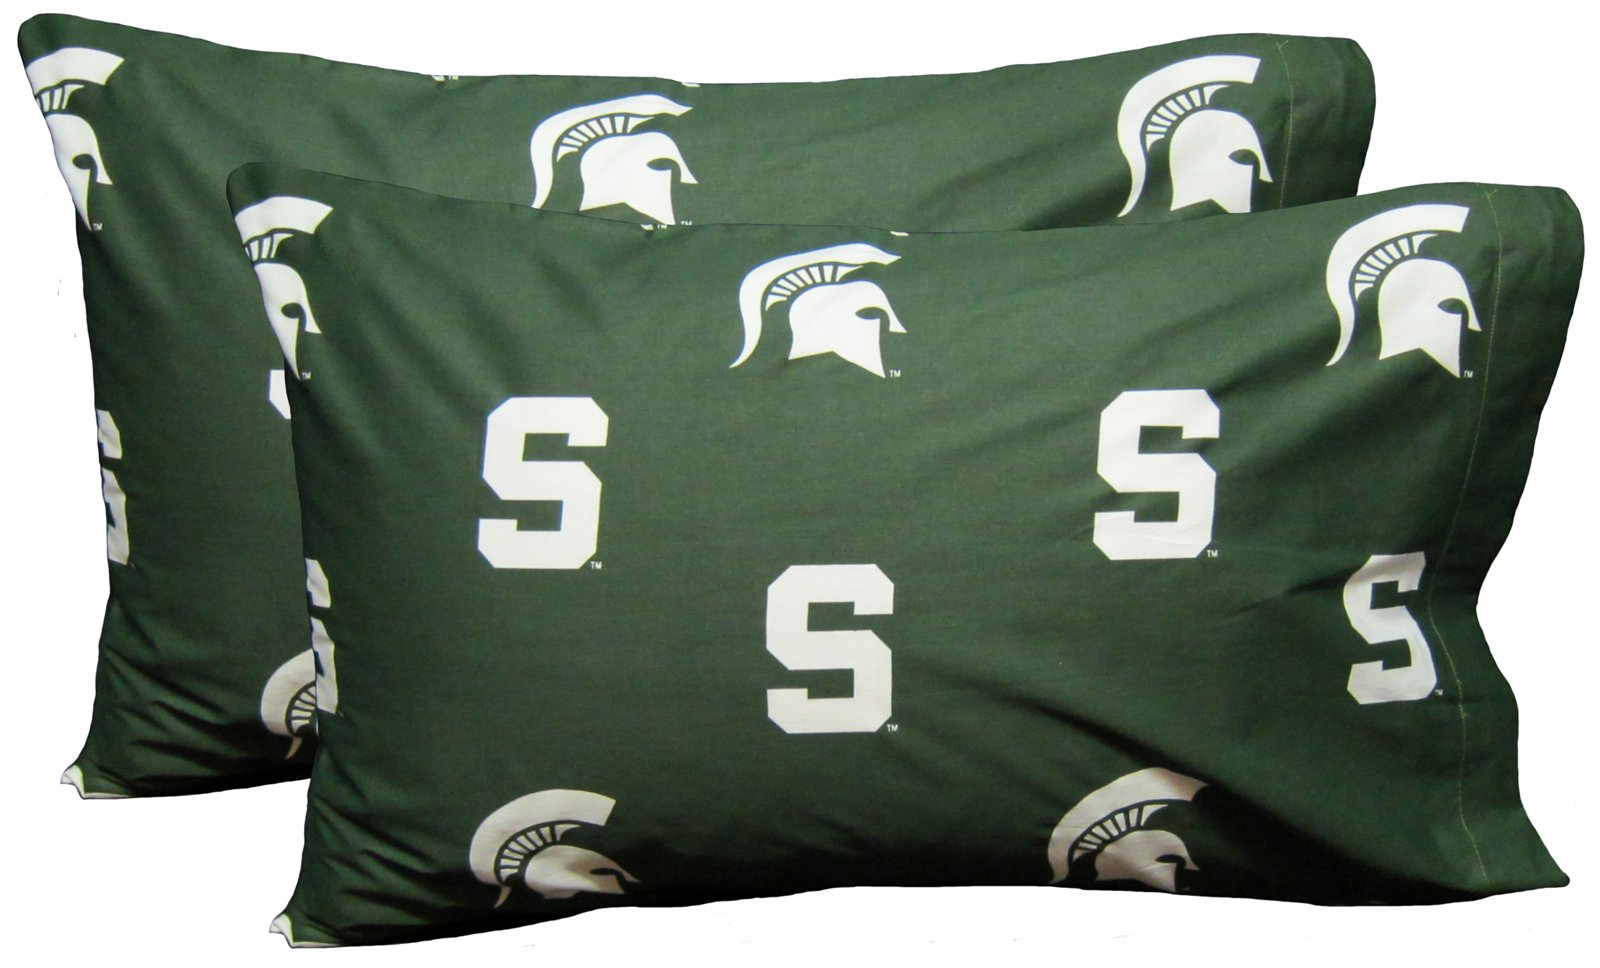 College Covers Michigan State Spartans Pillowcase Pair - Solid (Includes 2 Standard Pillowcases) by College Covers